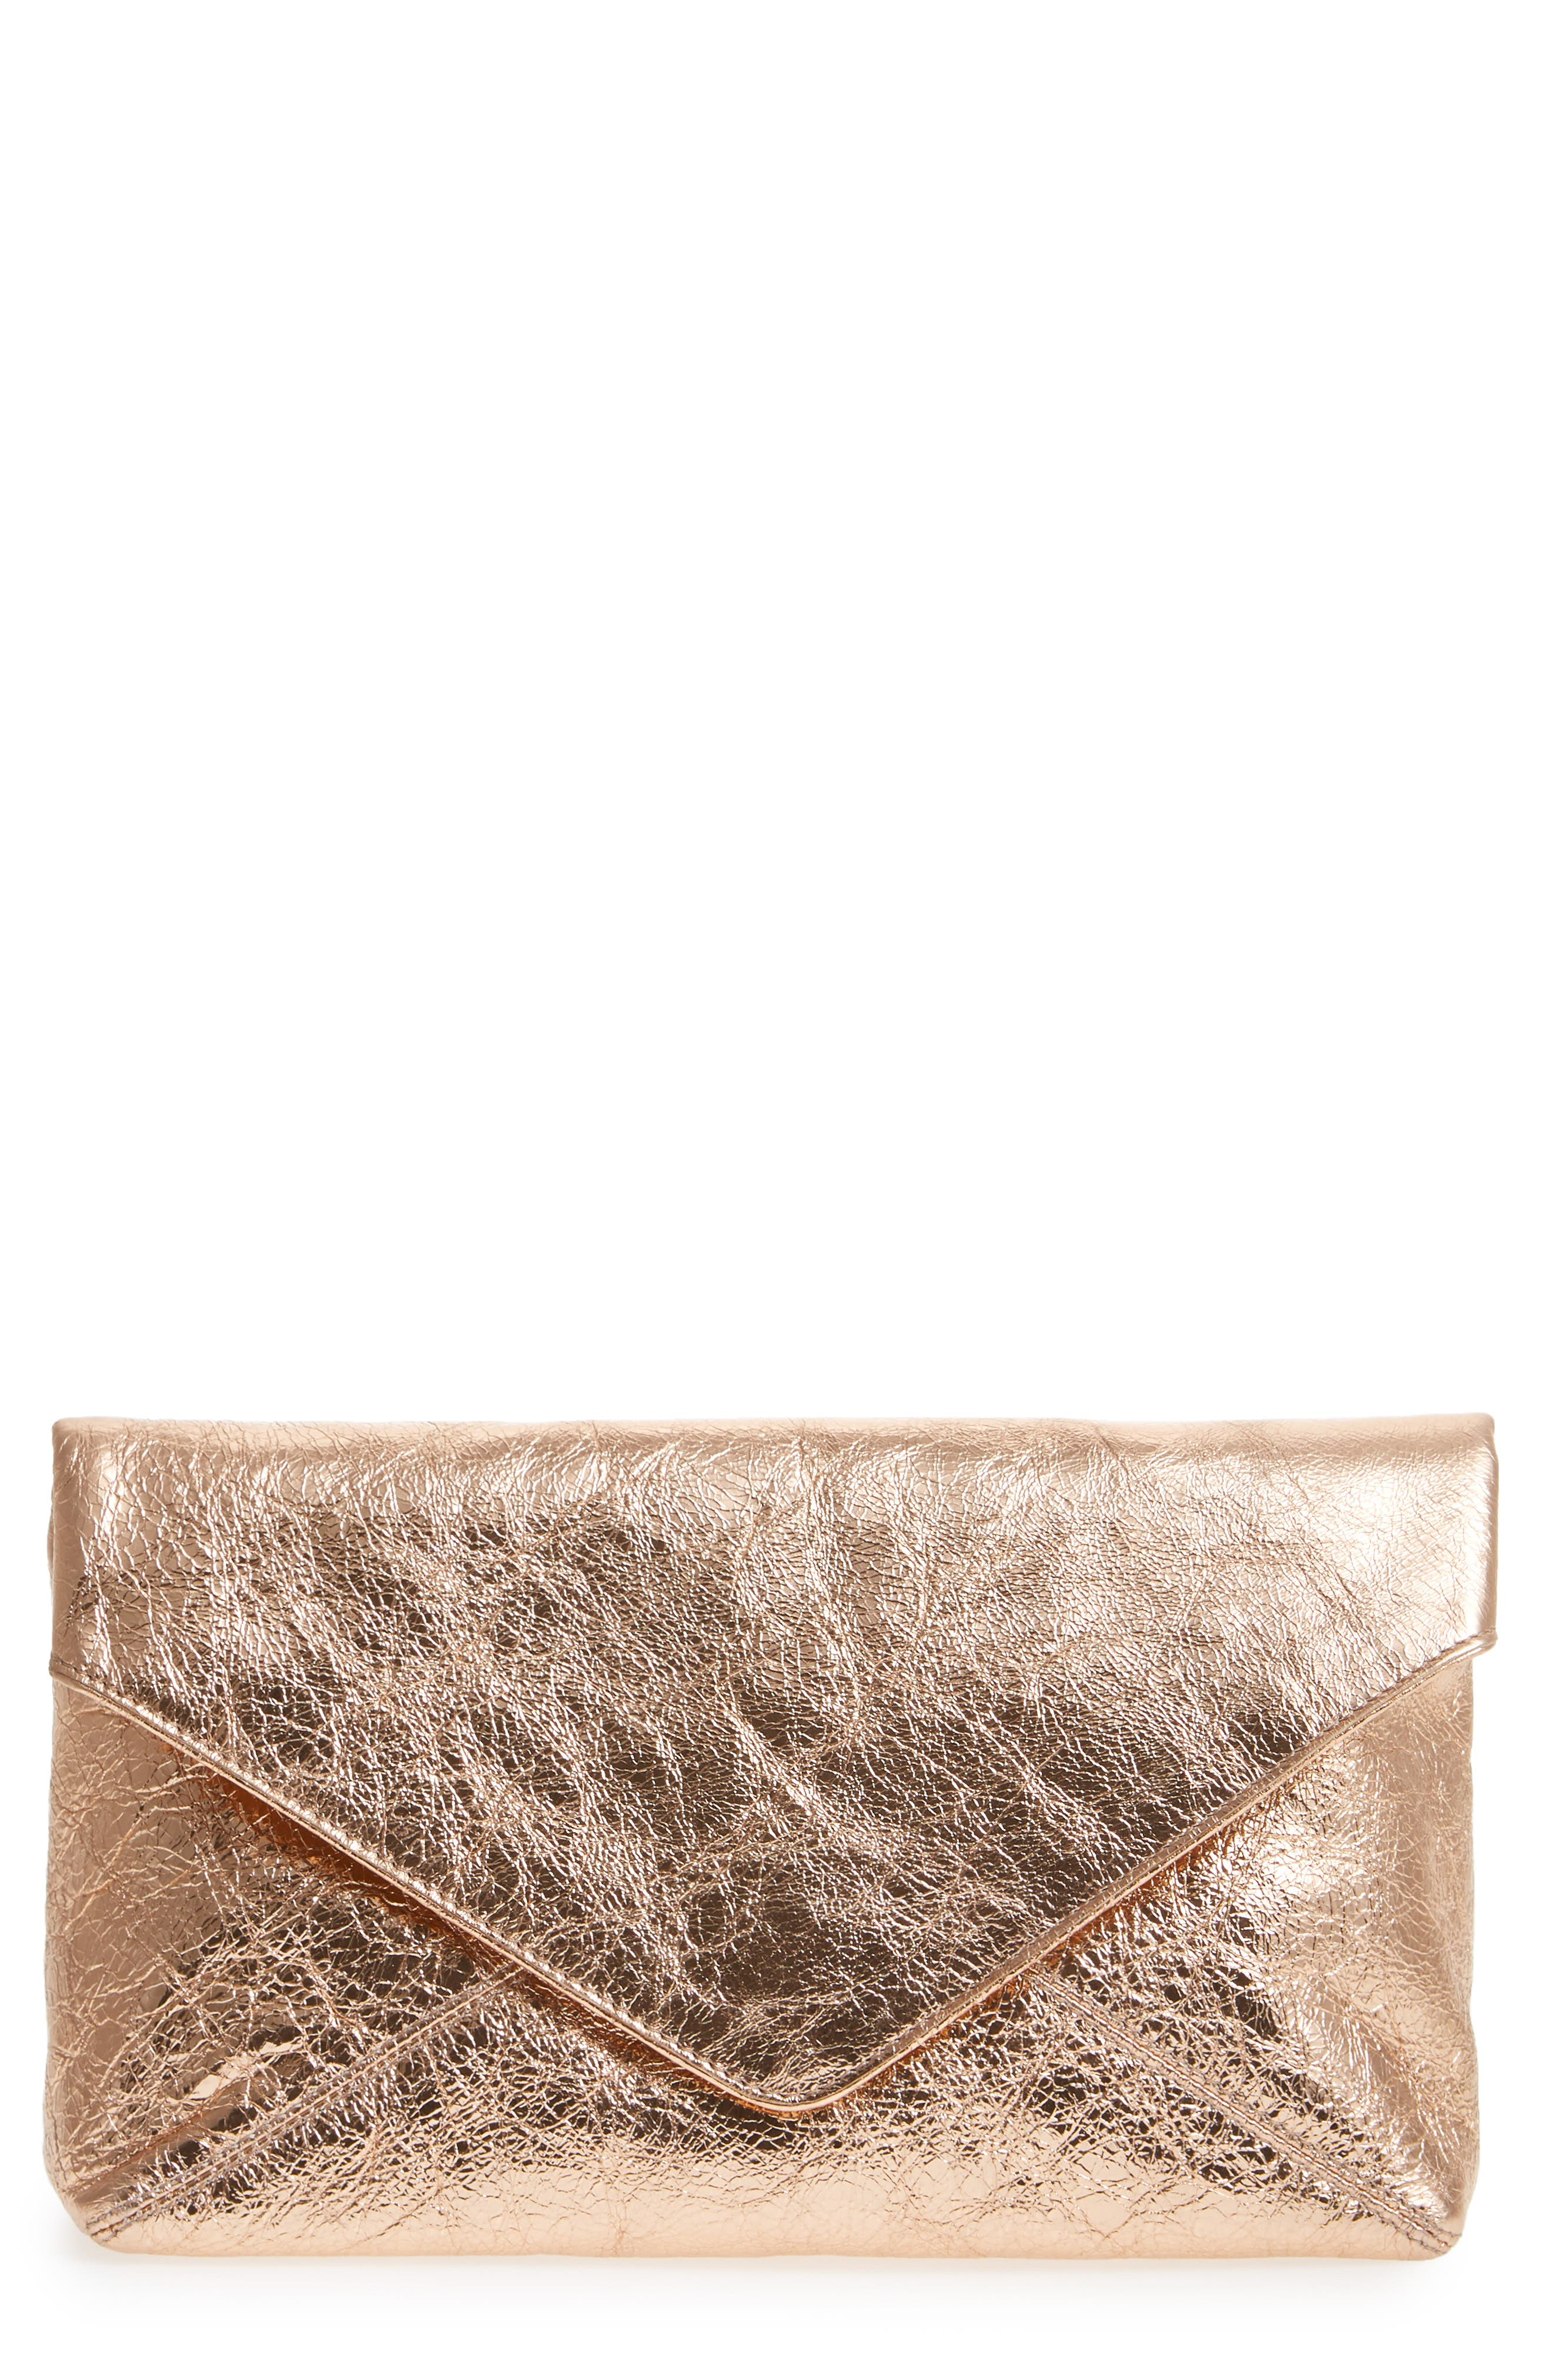 Main Image - Dries van Noten Crinkle Metallic Leather Envelope Clutch